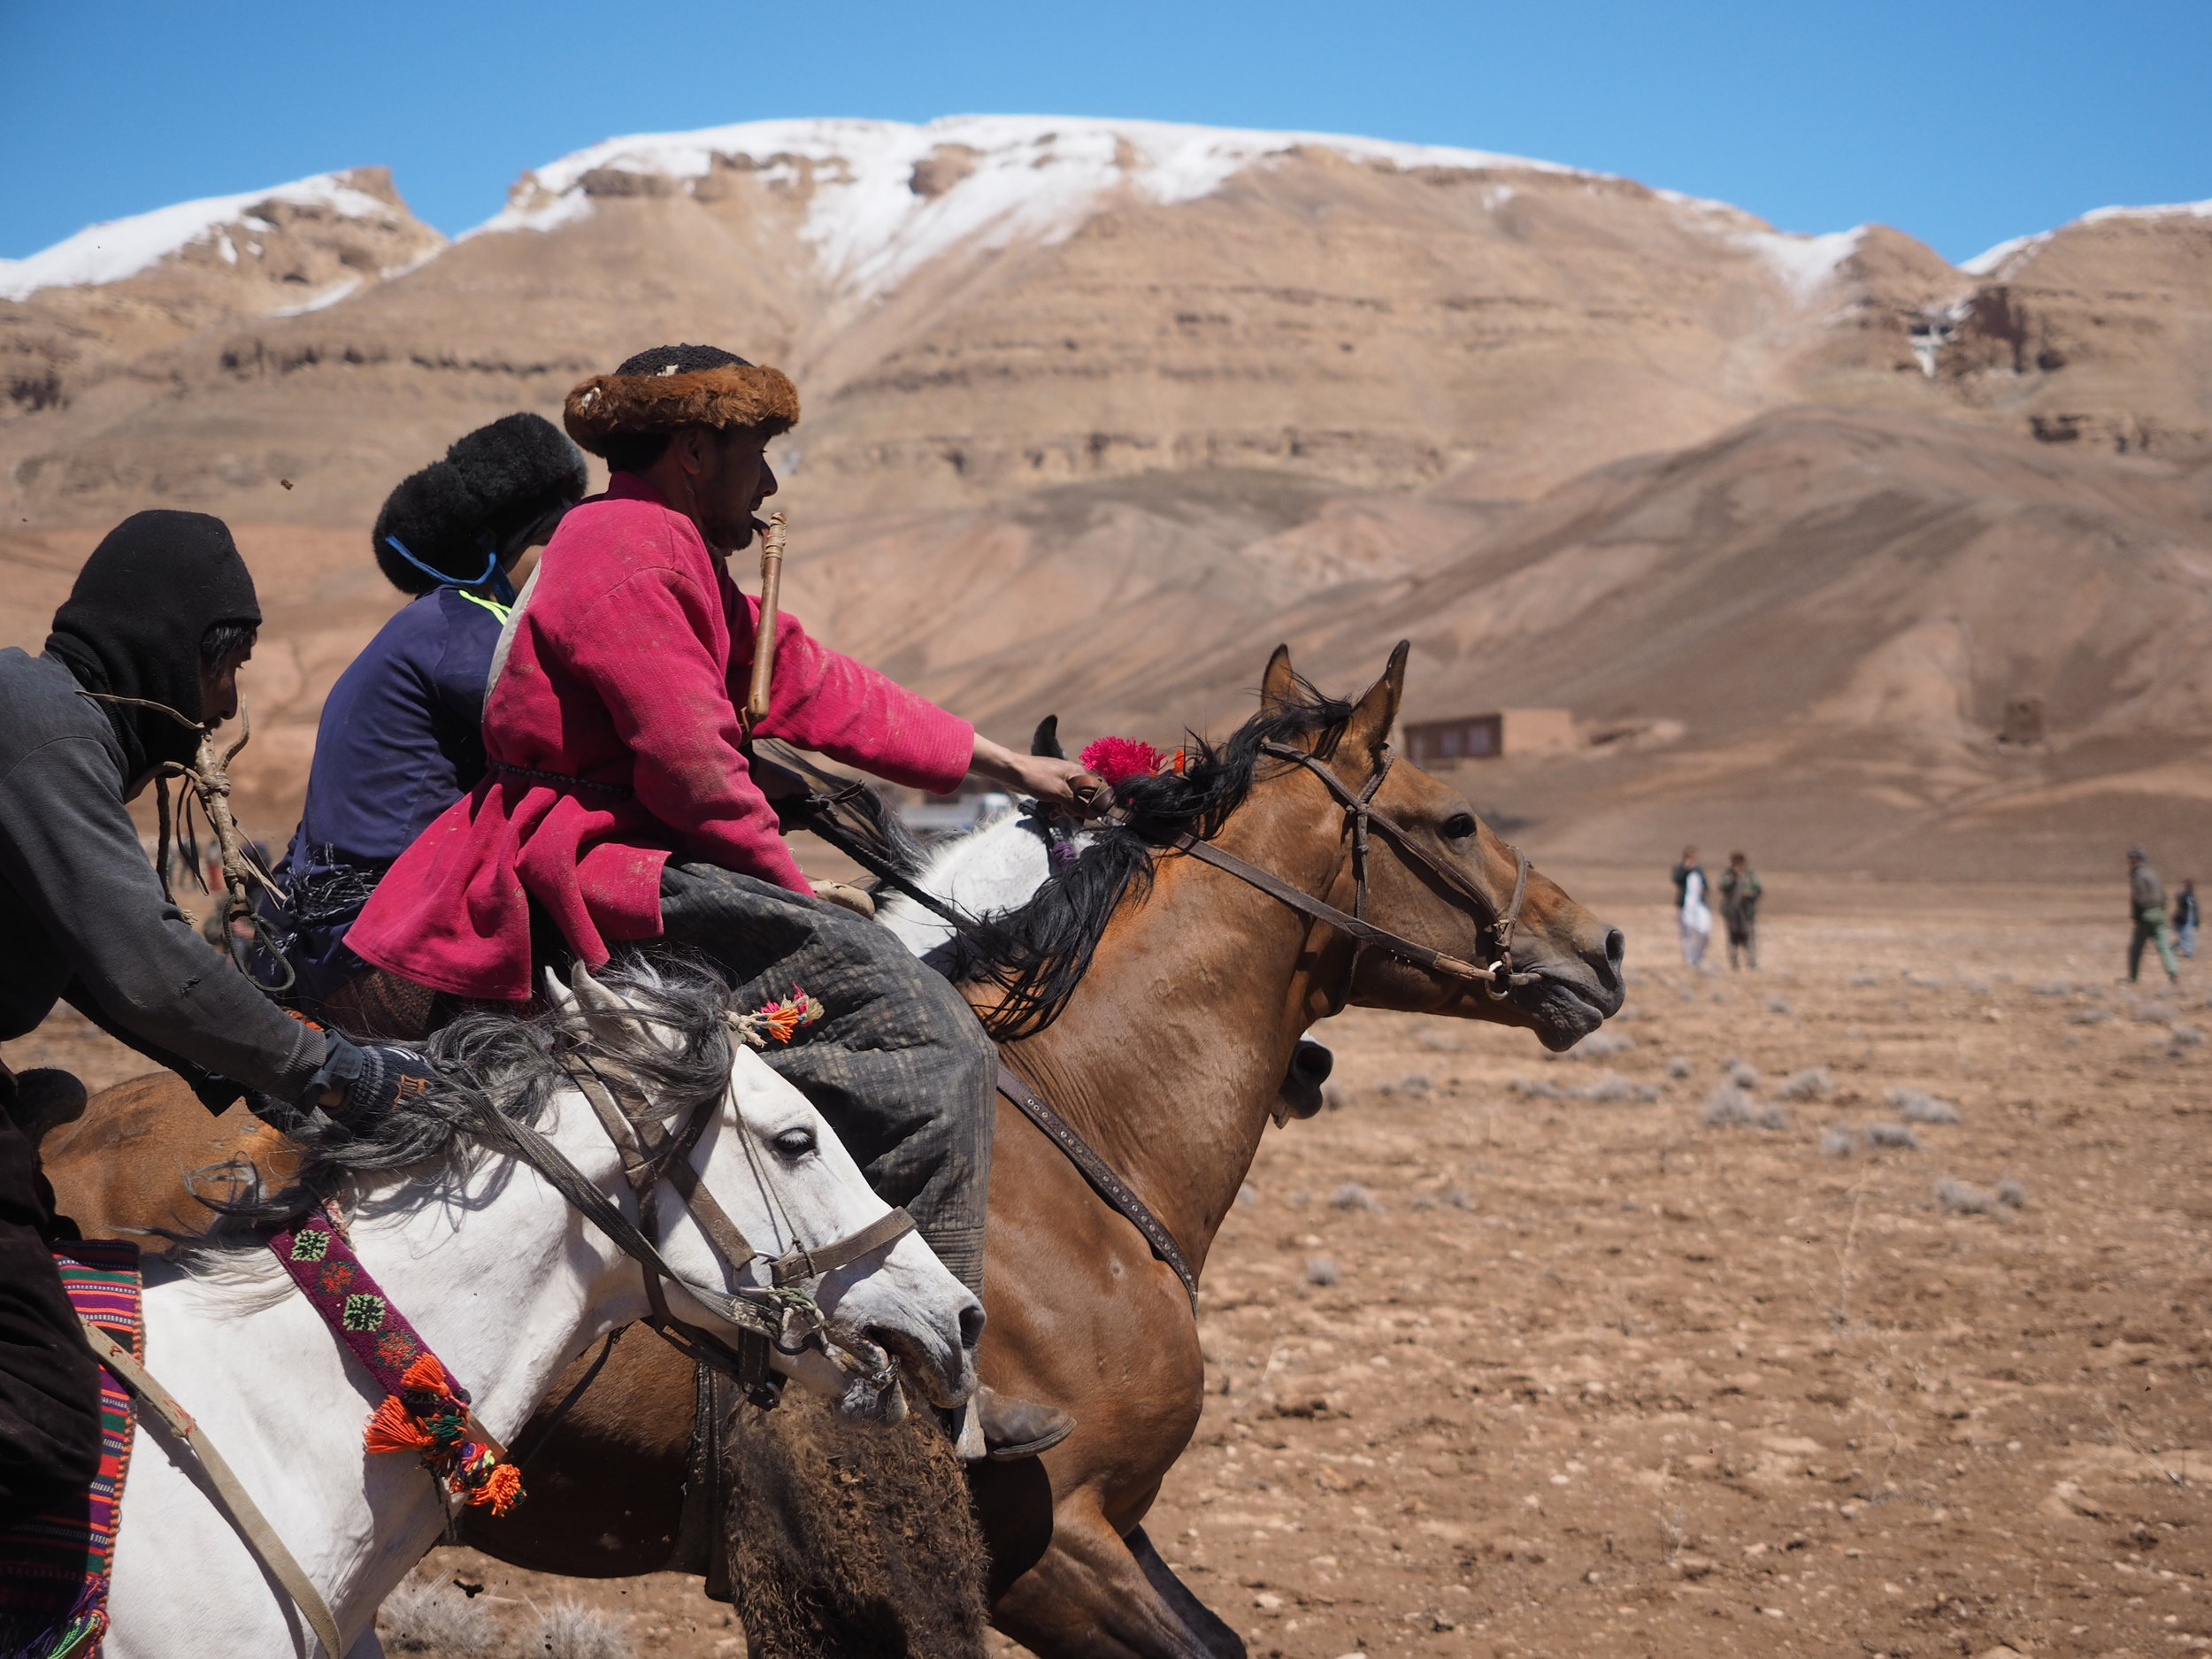 Buzkashi. Words can't describe how mental this was. I managed to get this shot by standing my ground.